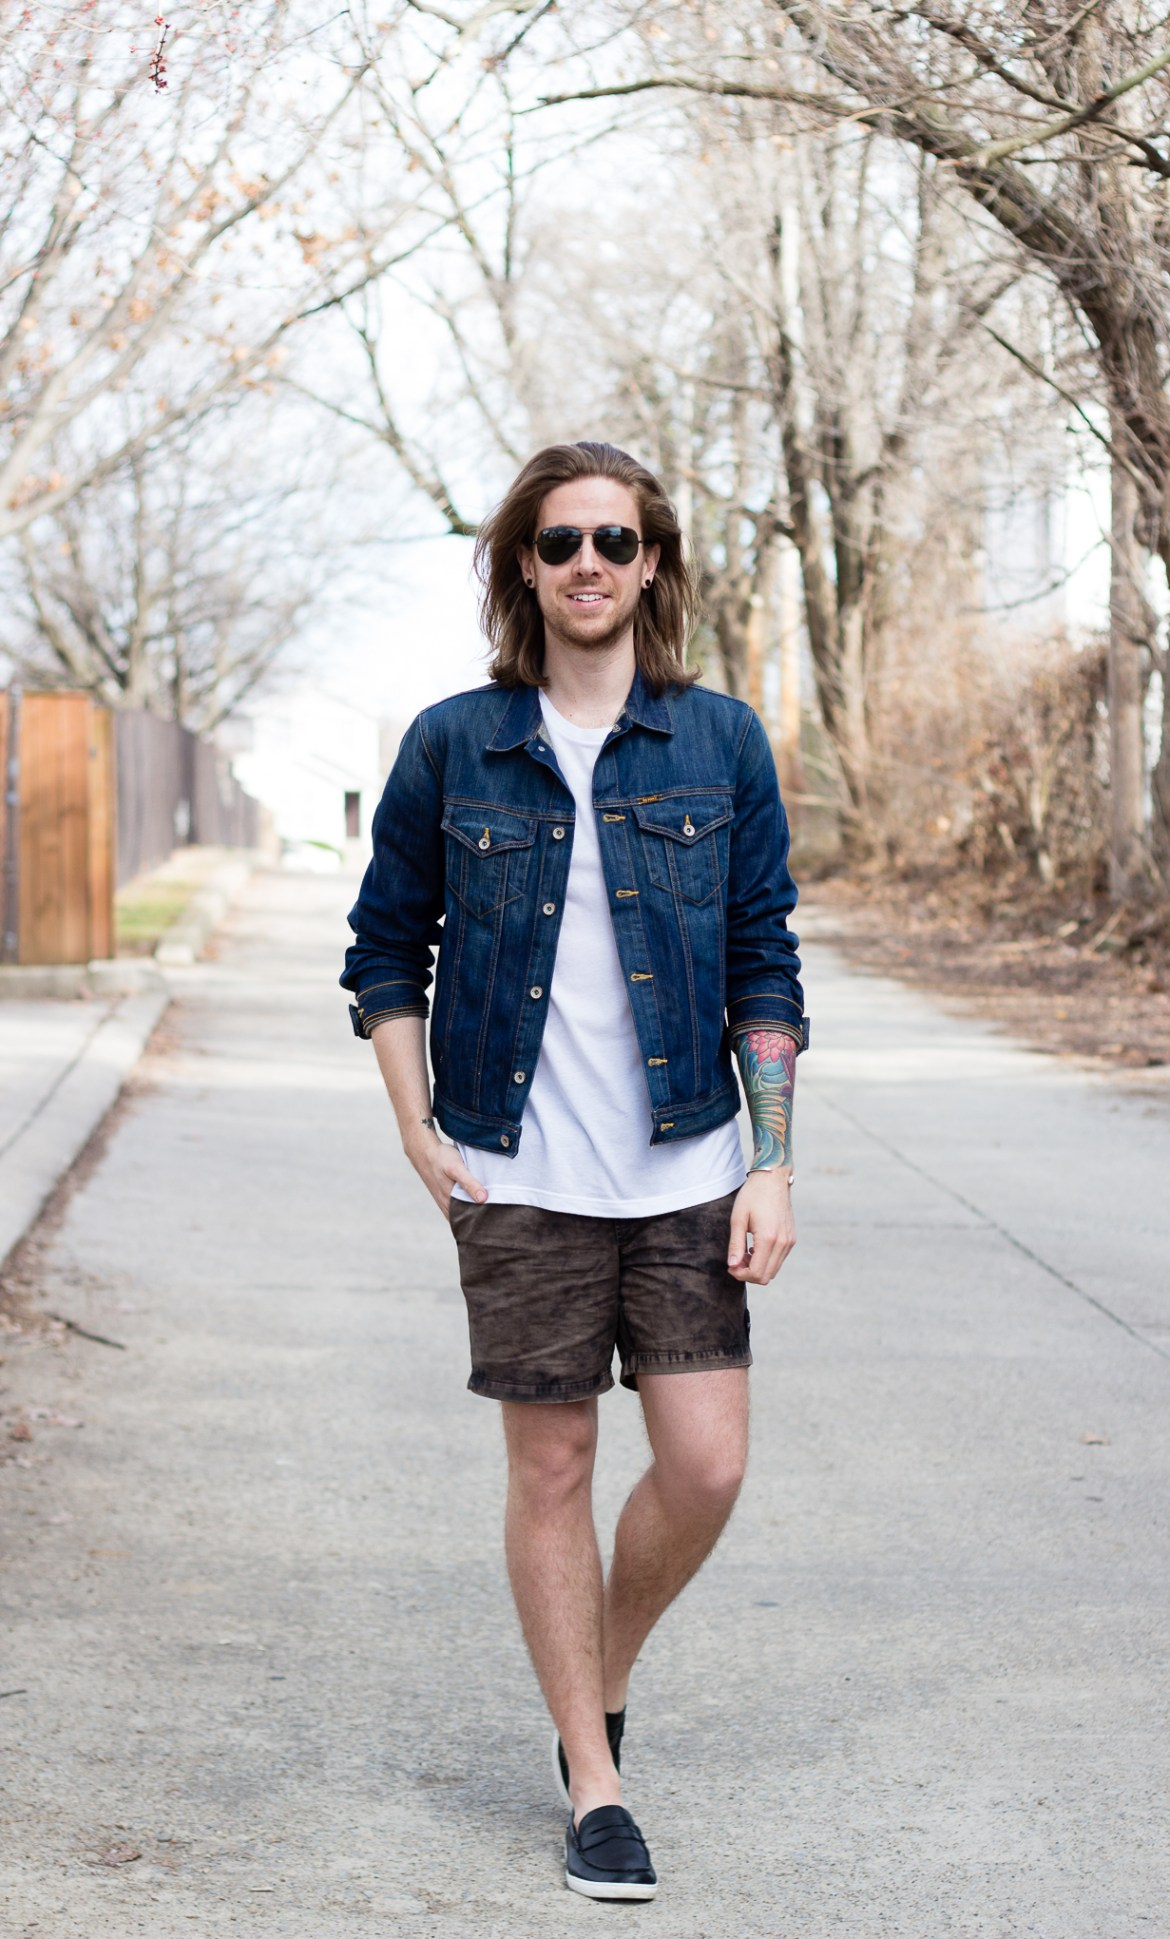 Big Star Denim Jacket and RVCA Shorts worn by The Kentucky Gent